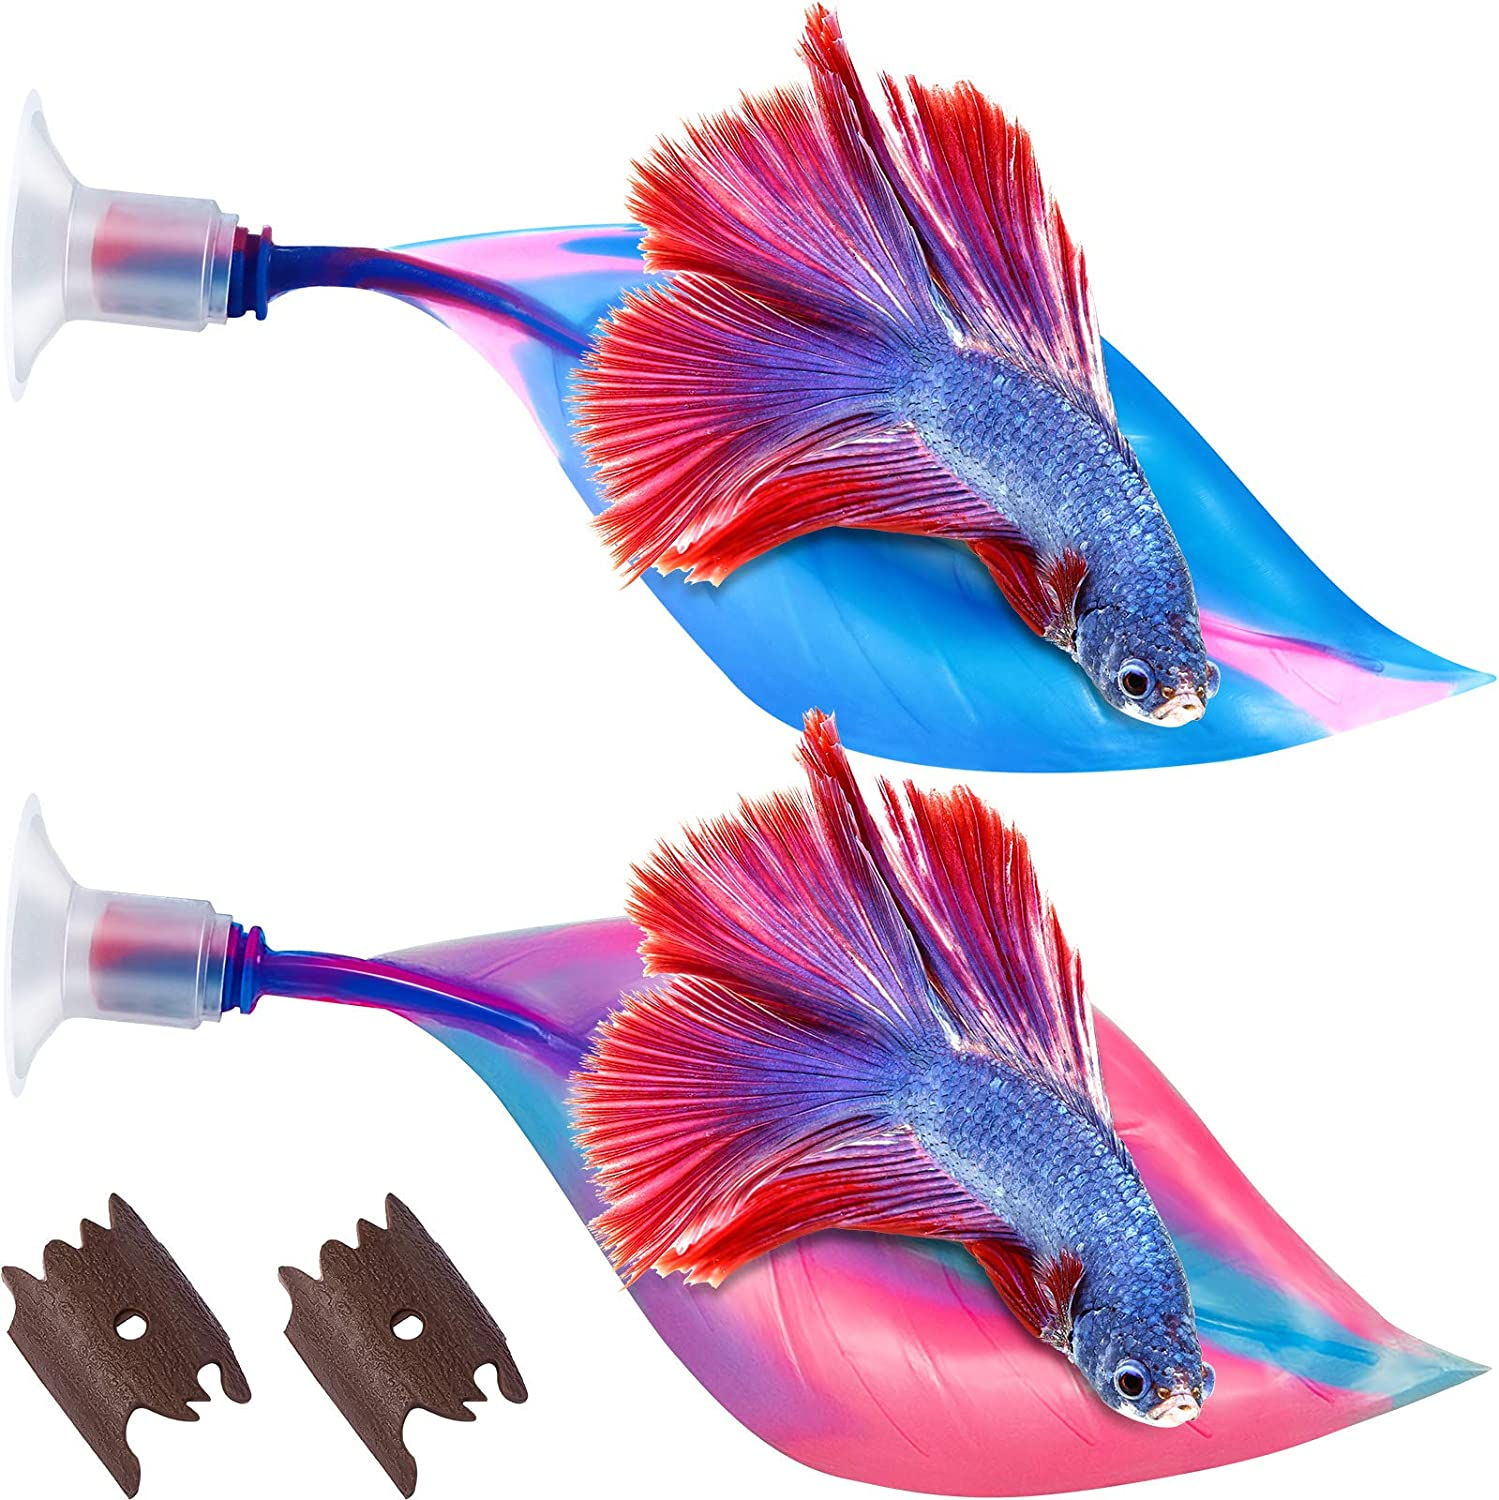 WILLBOND 2 Pieces Silicone Betta Bed Leaf Hammock for Betta Fish, Betta Fish Bed, Practical Resting Spot, No BPA, Comfortable and Safe (Blue, Pink)